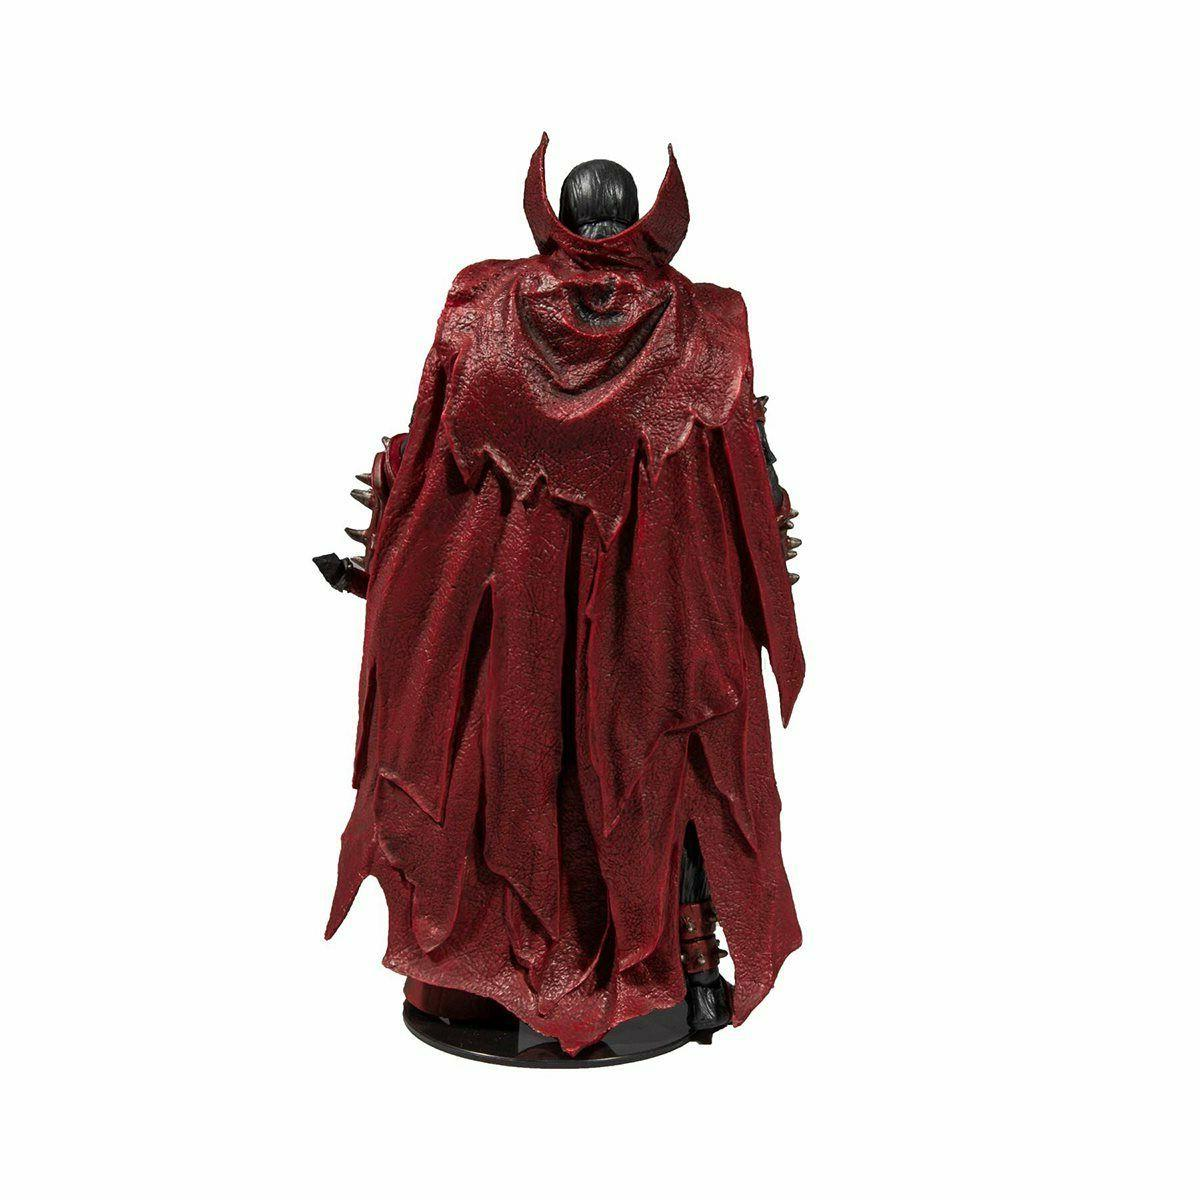 Mortal Series Spawn 7-Inch Action Figure STOCK!!!